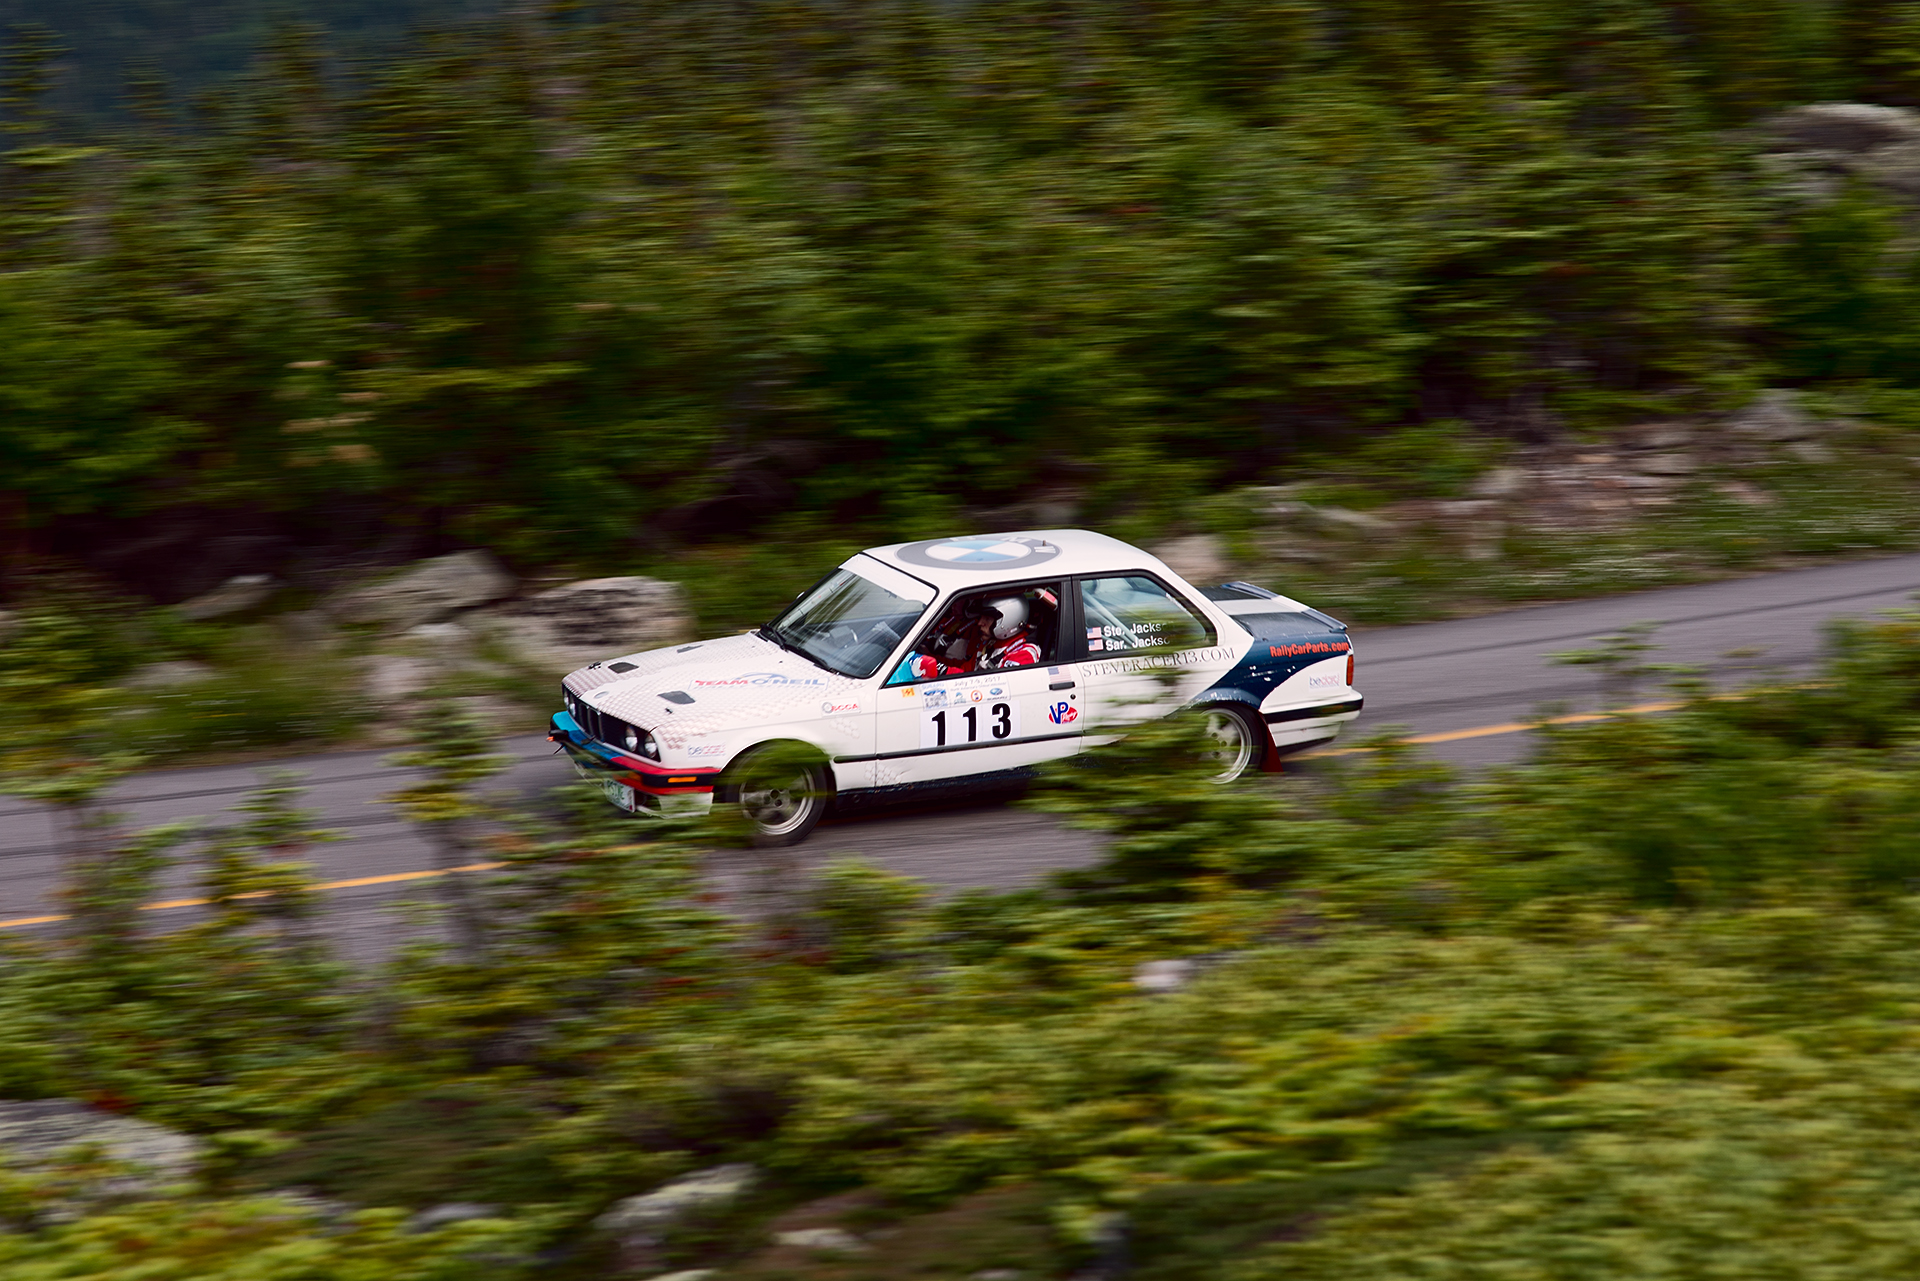 Car 113 at Climb to the Clouds 2017